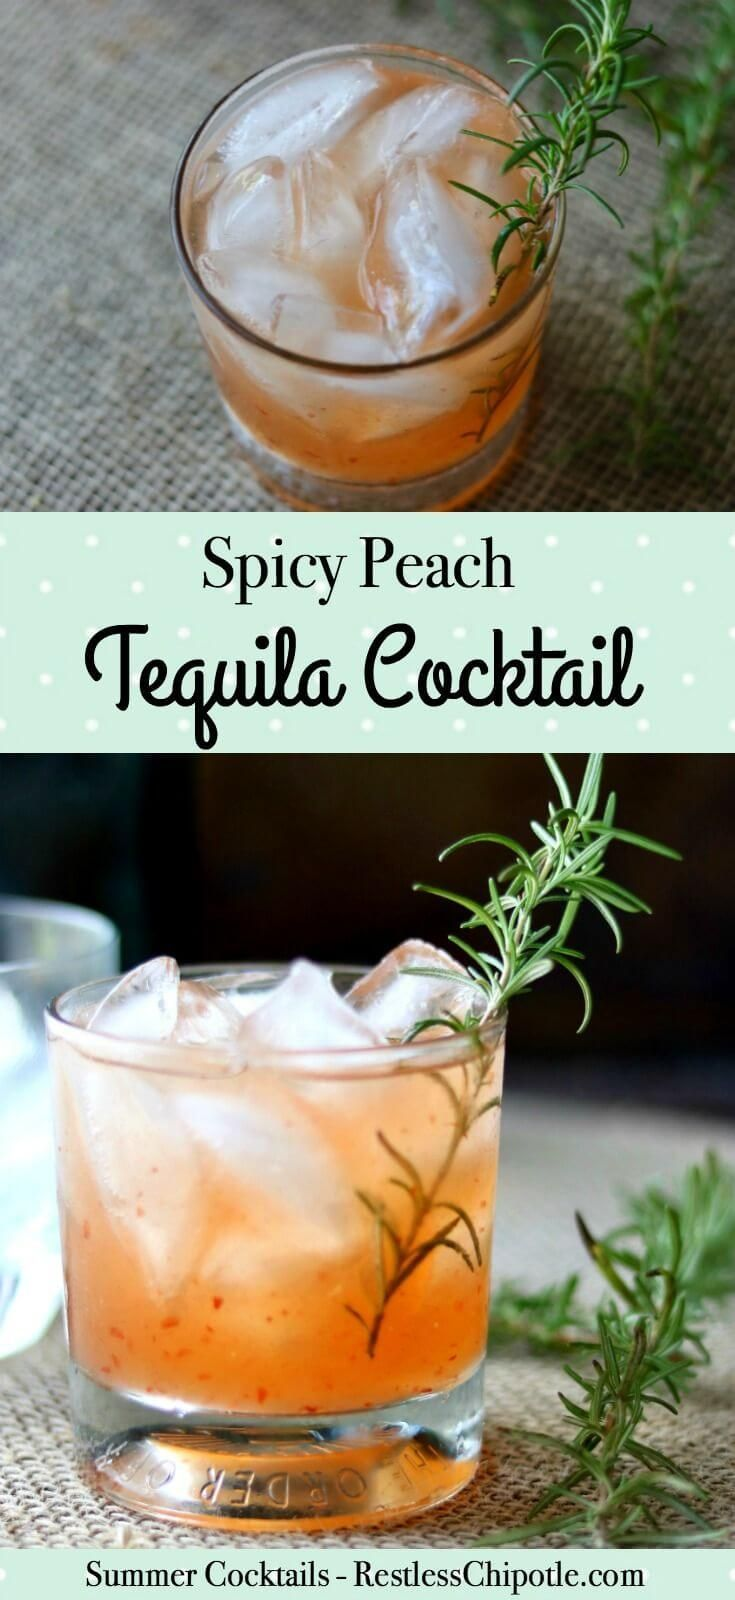 Spicy-sweet, this tequila cocktail is a take on the classic Tequila Sour recipe. Sweet peach flavor is balanced with a tart blast of lime and fiery pepper jelly. From http://restlesschipotle.com via @Marye at Restless Chipotle